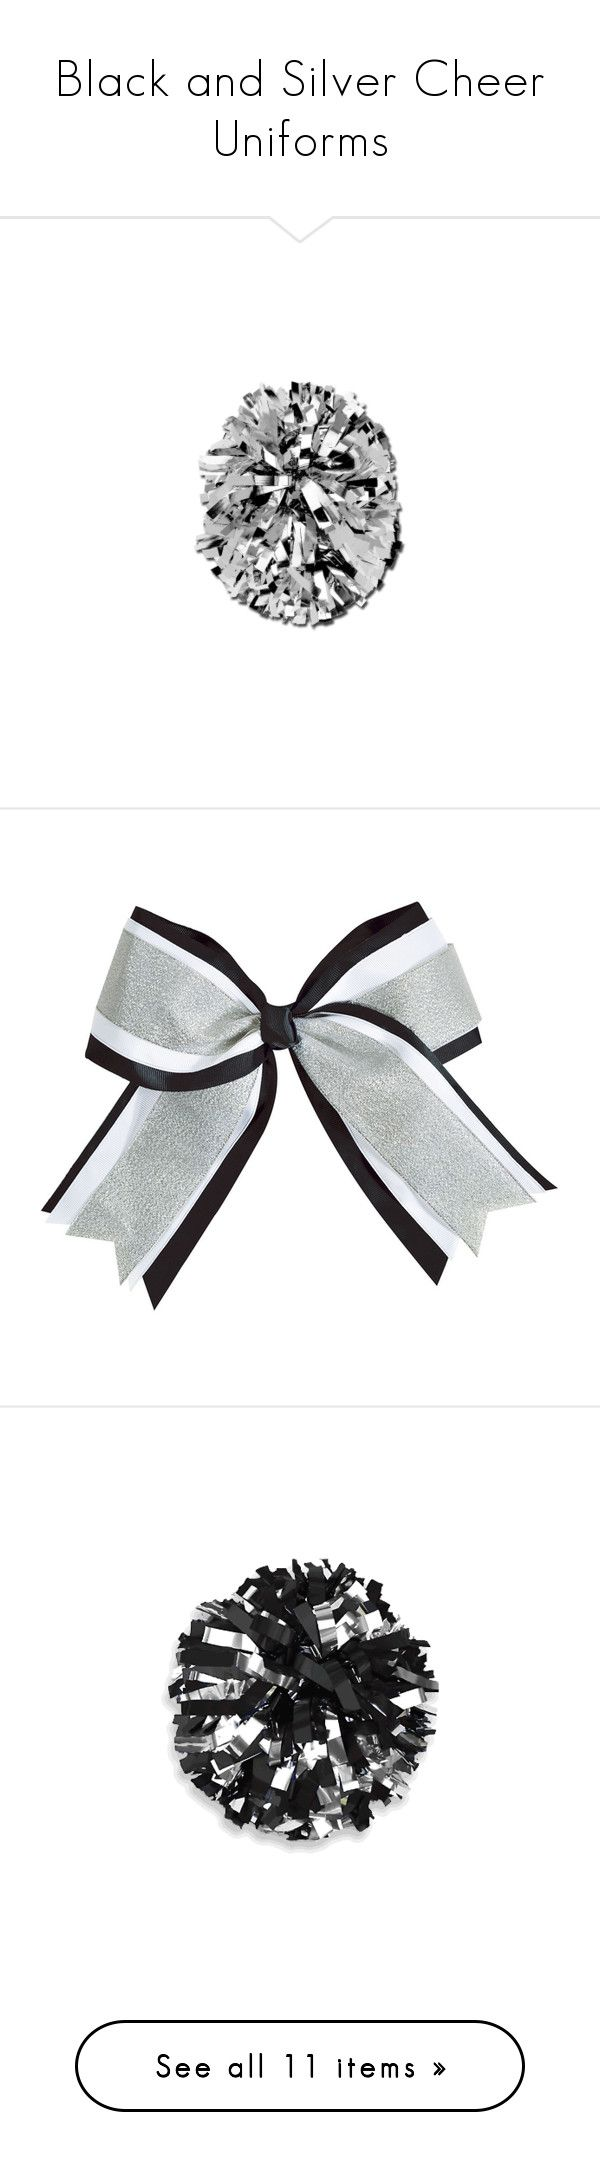 """Black and Silver Cheer Uniforms"" by galacticpeanut ❤ liked on Polyvore featuring cheer, cheerleader, dance, sports, cheerleading, accessories, cheer/dance, skirts, bottoms and metallic skirt"